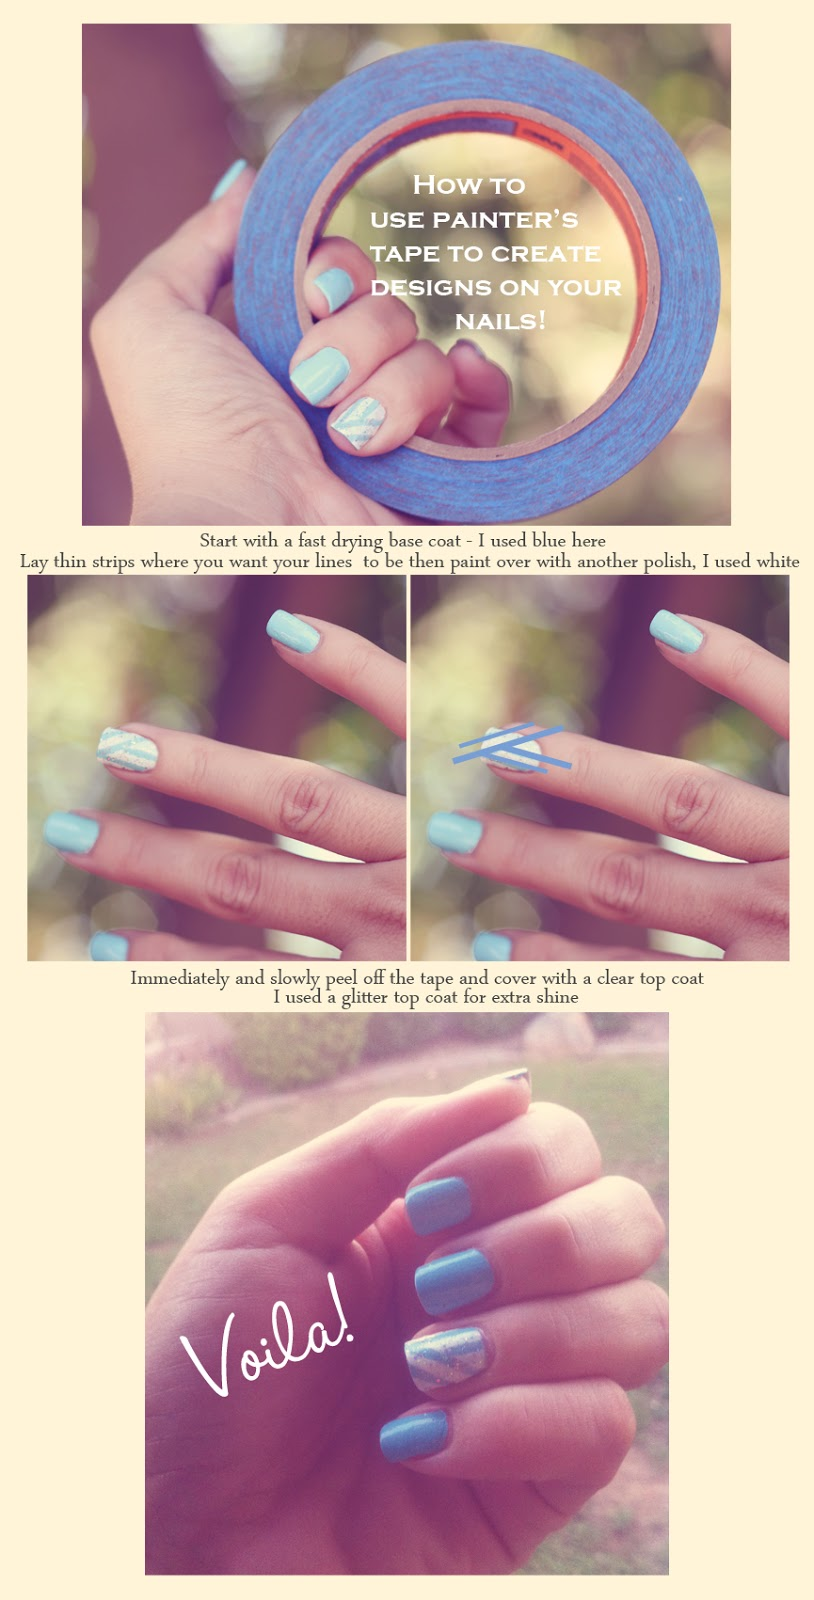 easy do it yourself nail design ideas there are many designs you can